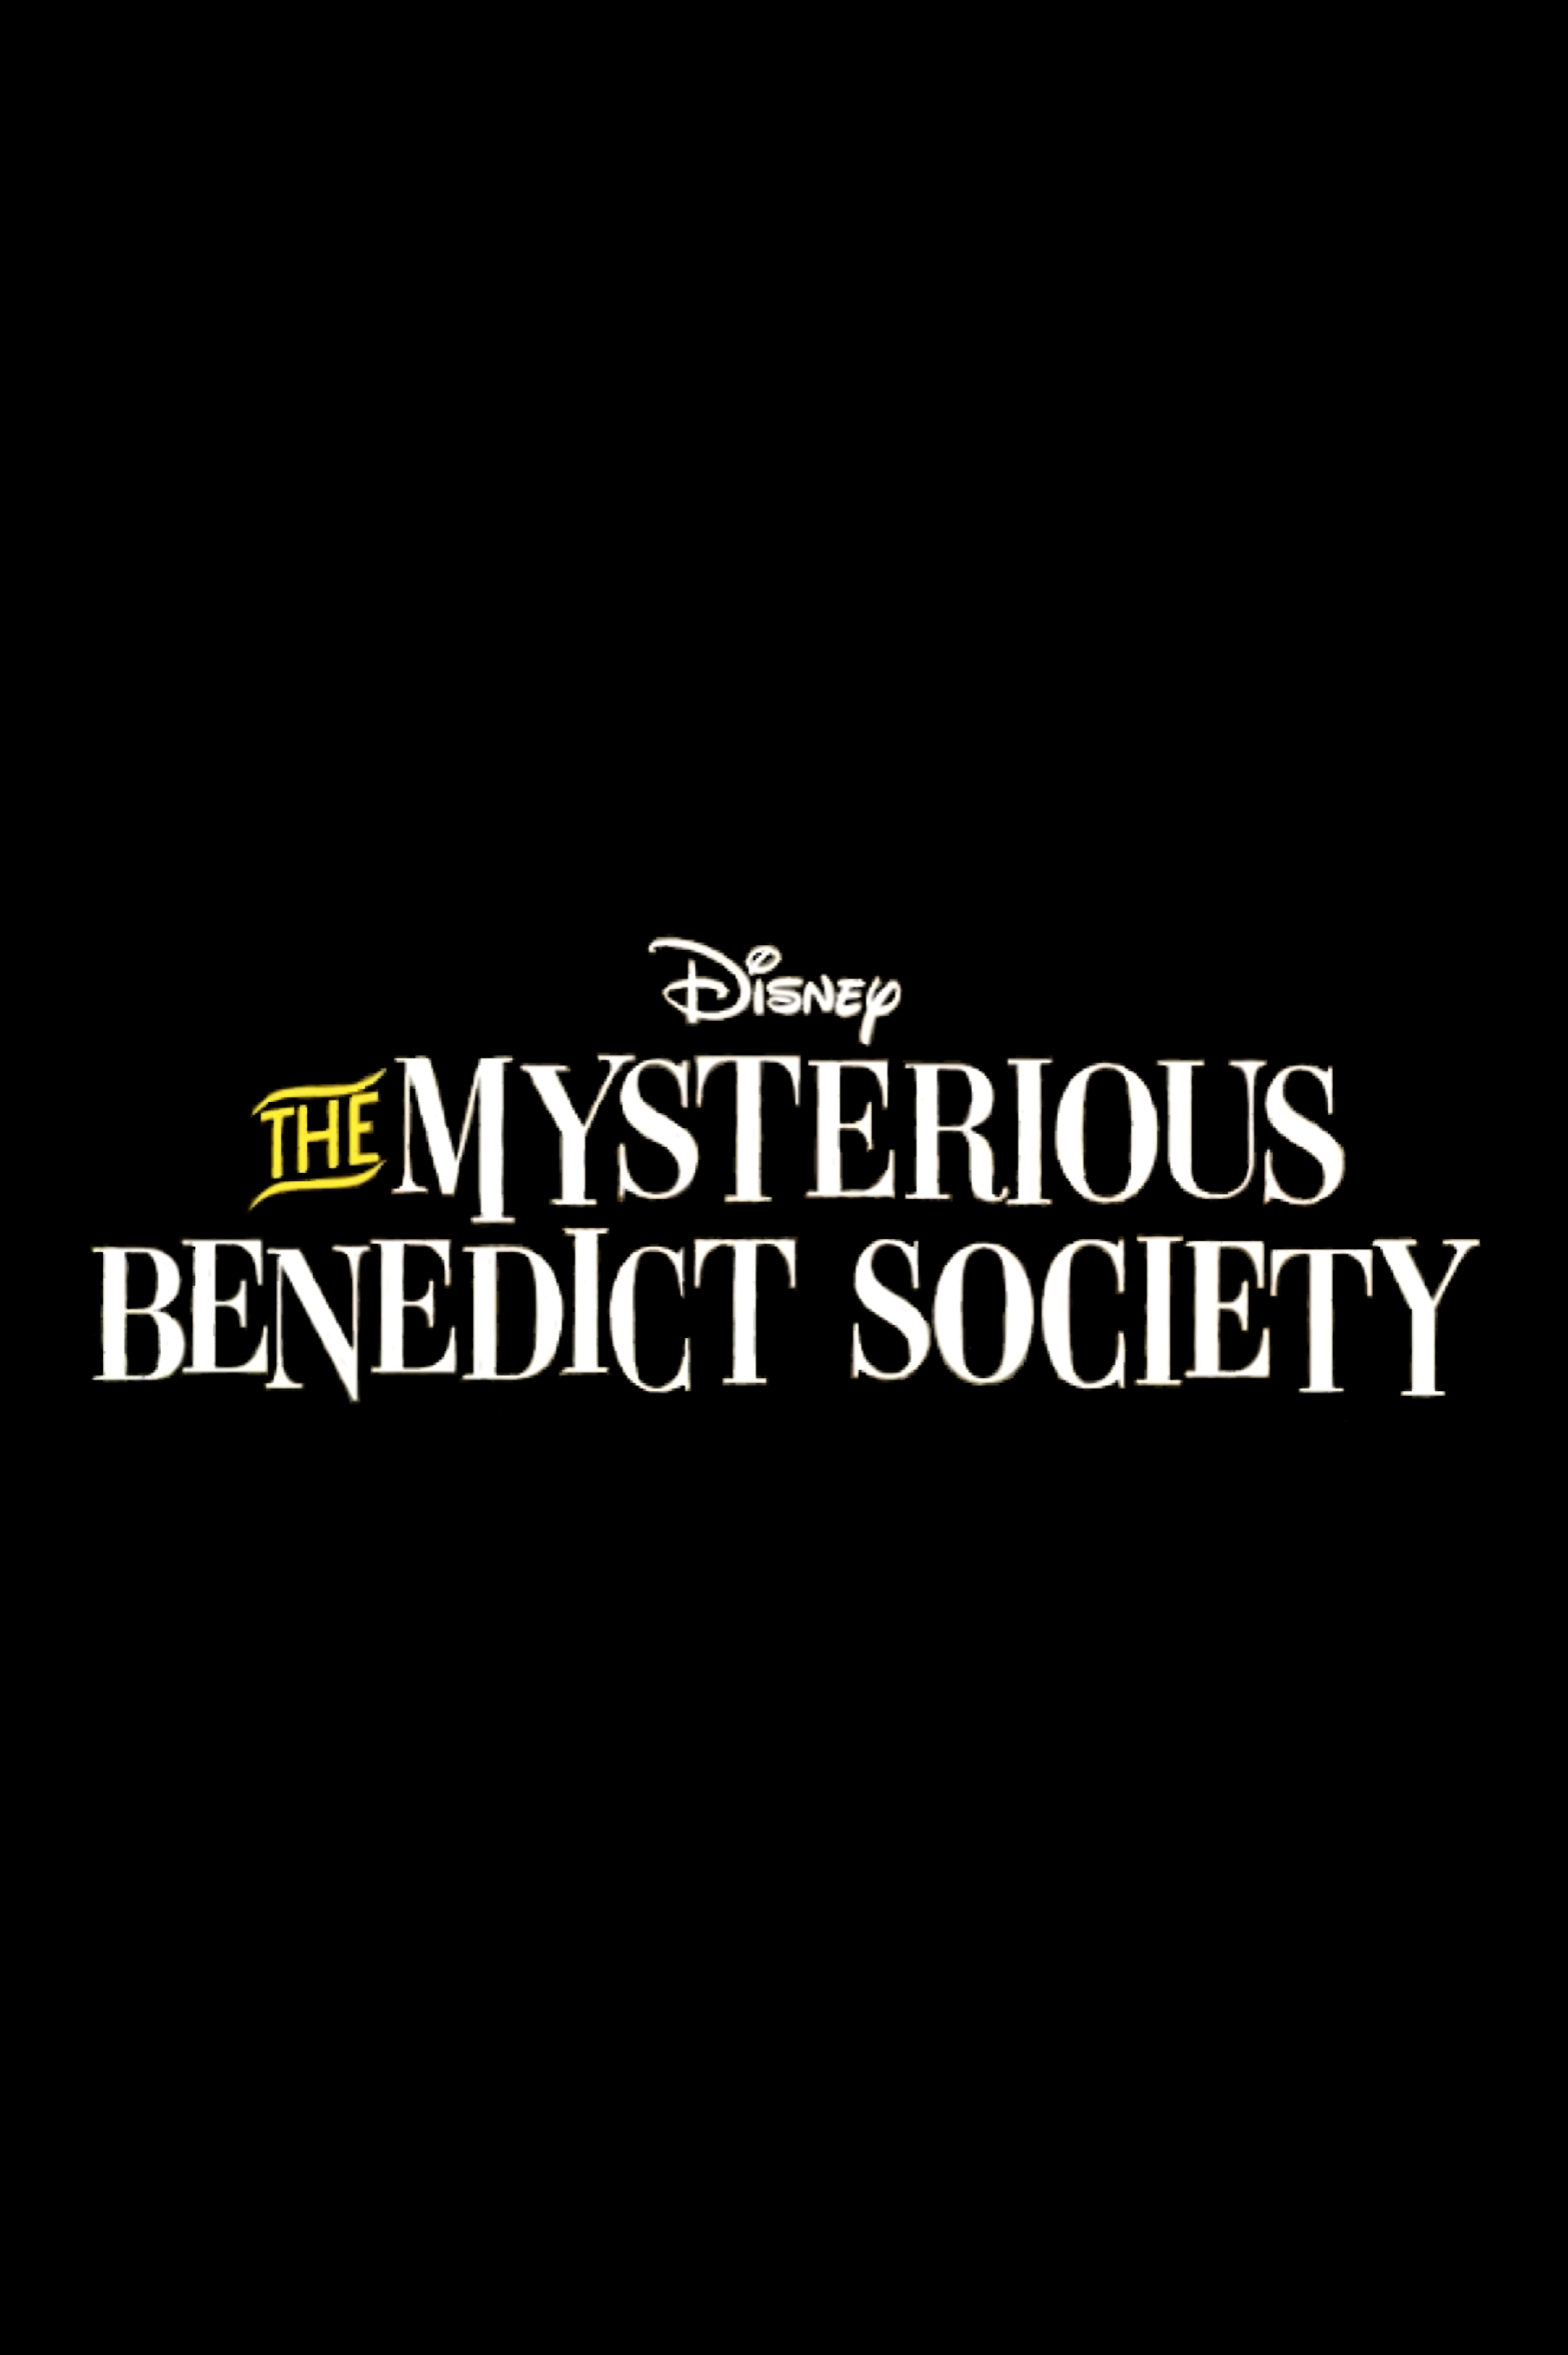 Download Séries The Mysterious Benedict Society 1ª Temporada Torrent 2021 Qualidade Hd